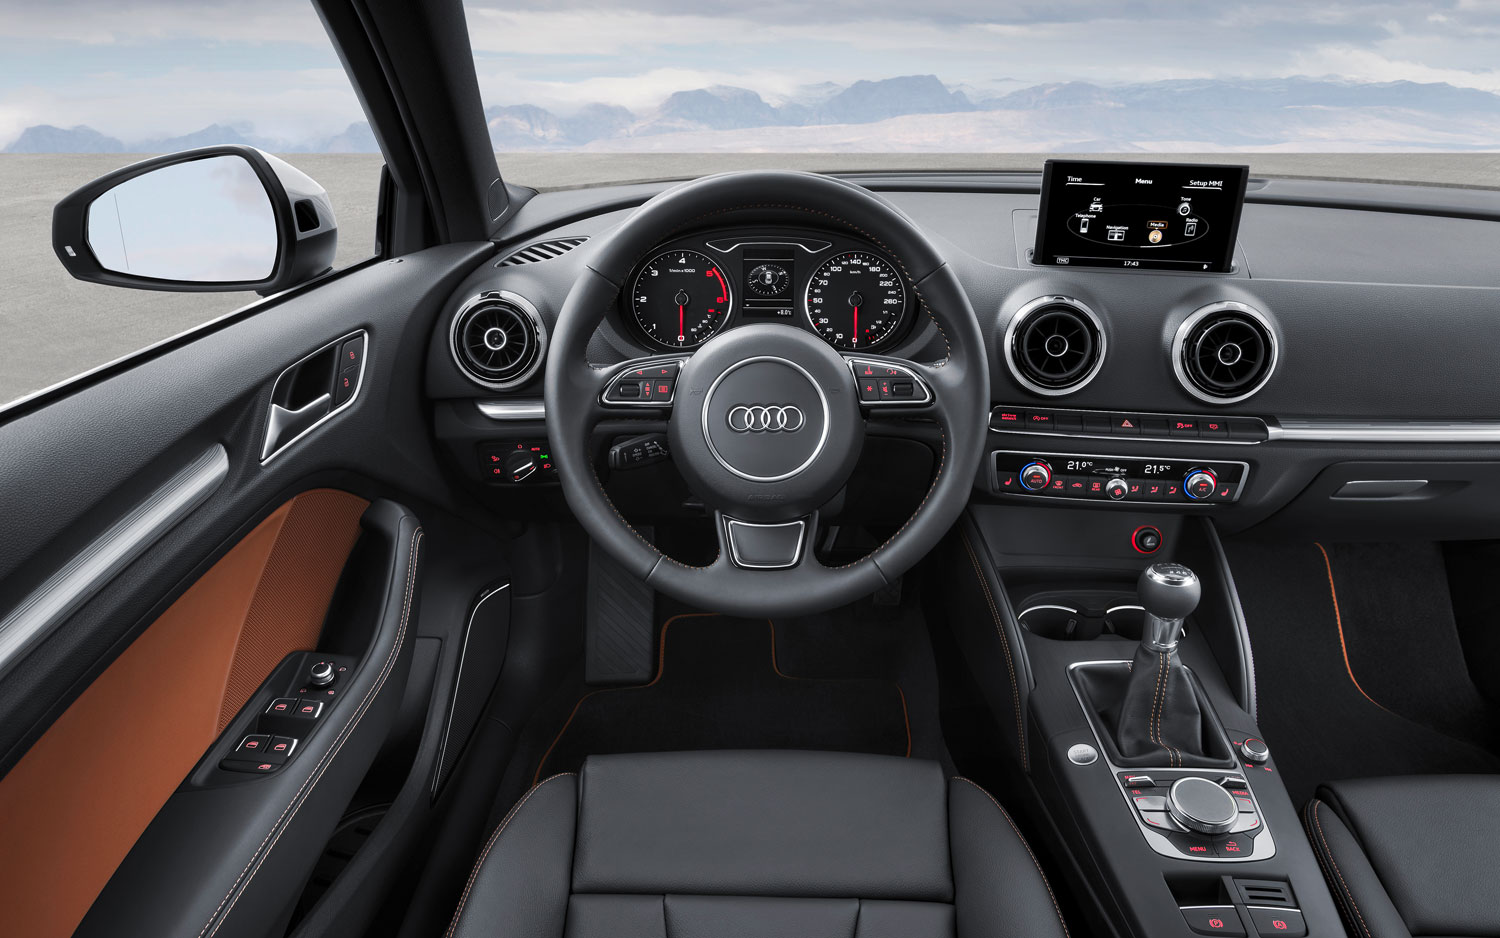 awesome-design-of-the-audi-a4-2015-interior-with-brown-accent-ideas-with-black-dash-ideas